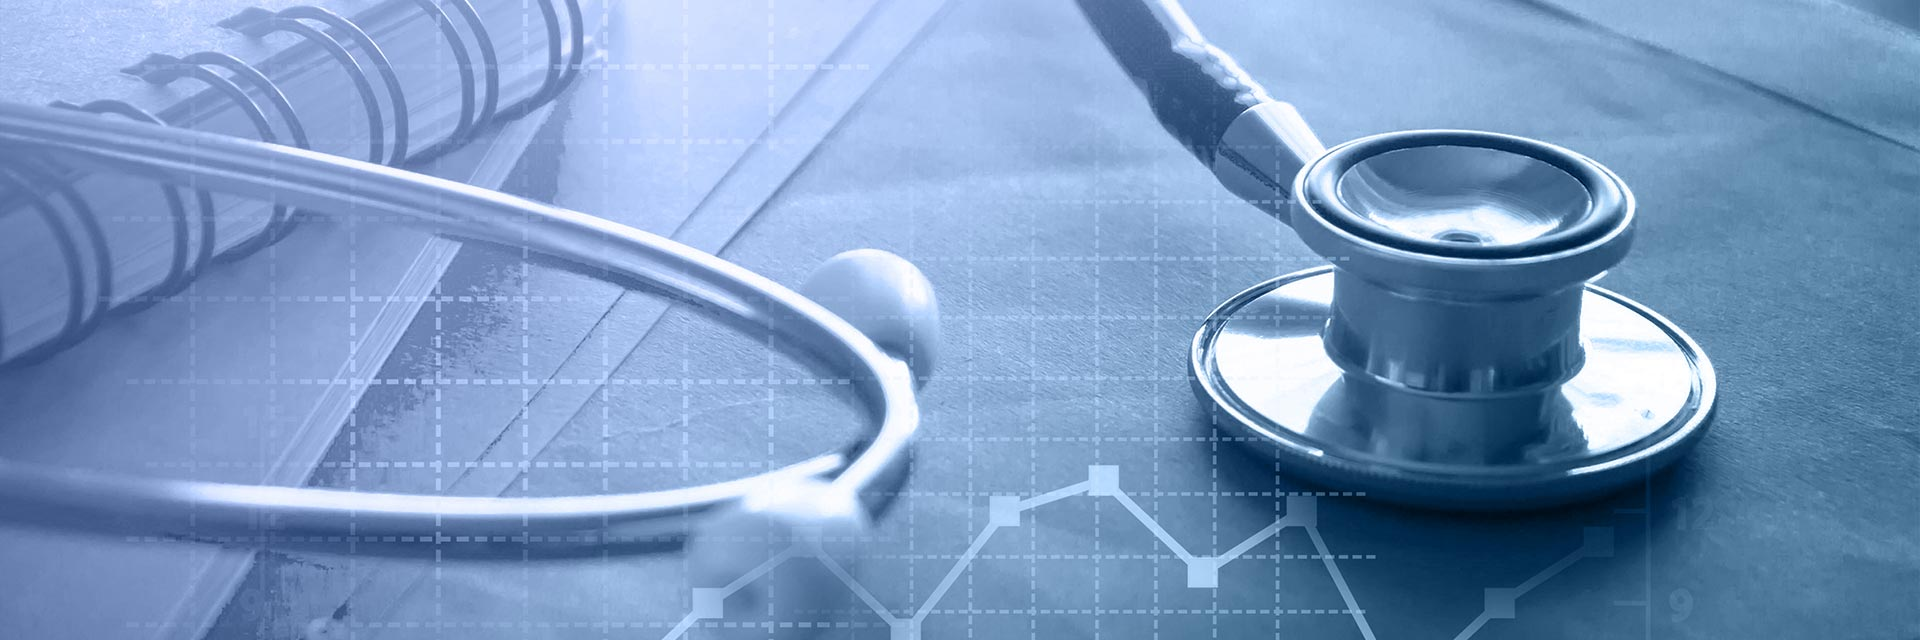 stethoscope and healthcare business graphic composite